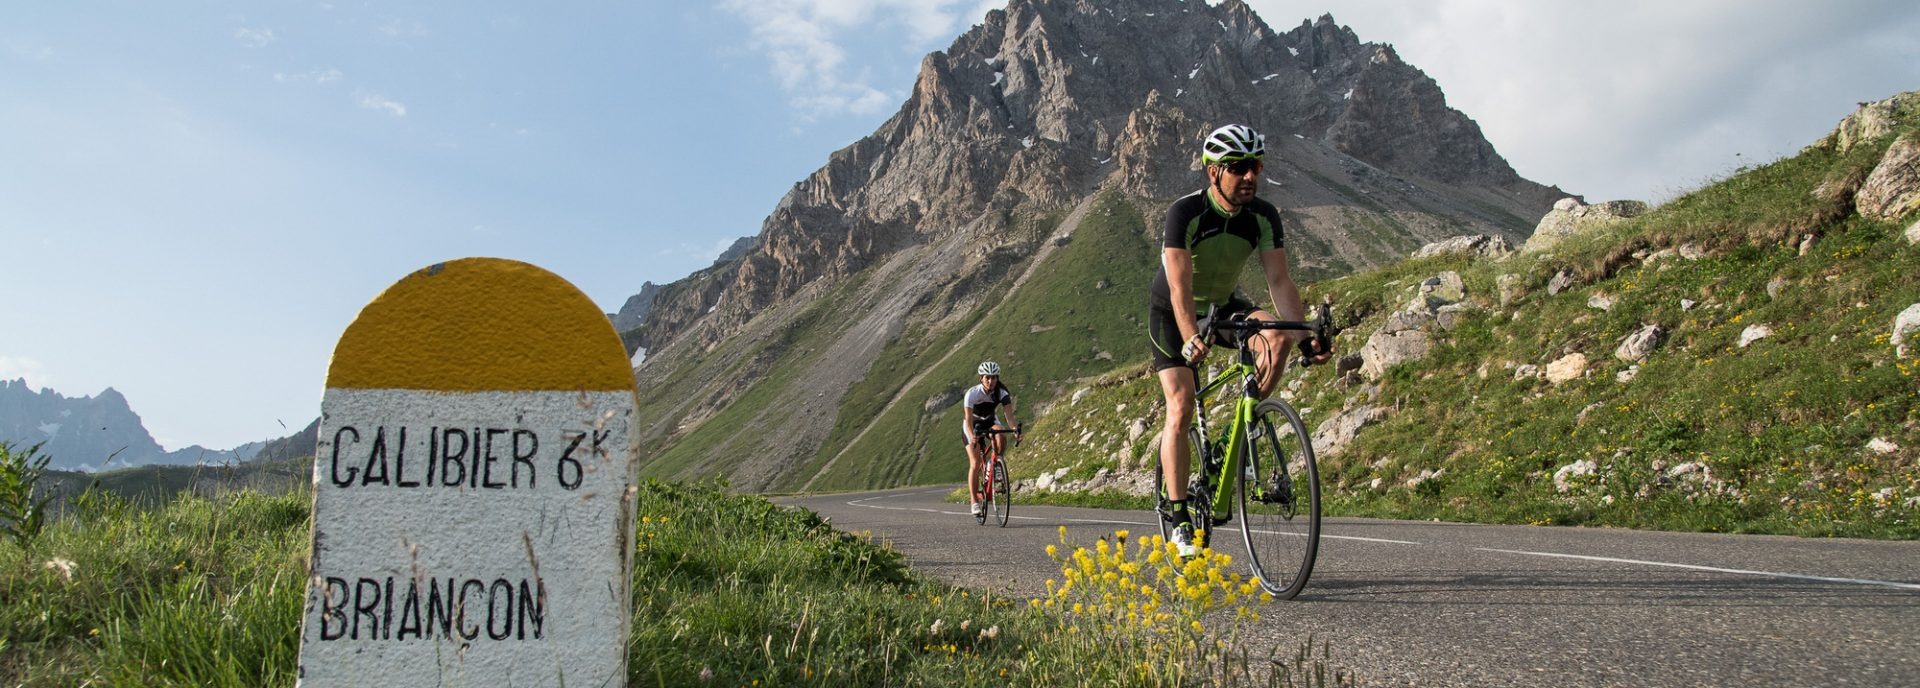 Ascension Galibier en vélo au lever de soleil